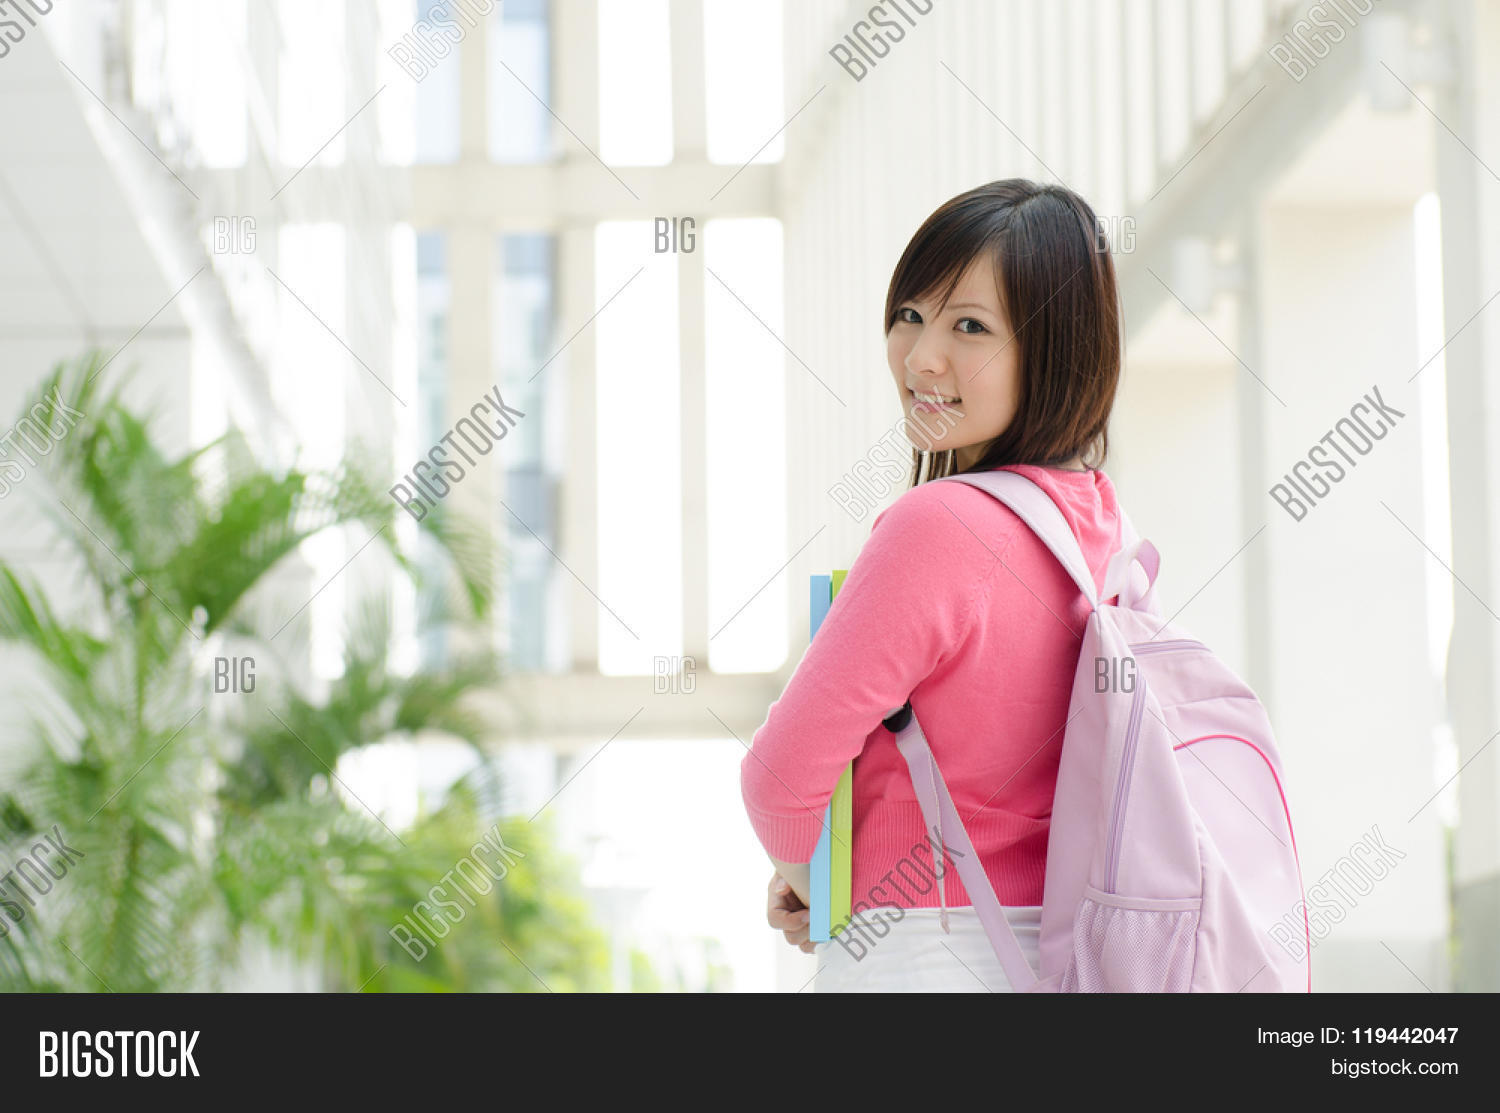 Young Asian Teen Student Standing Outside School Campus Building Holding File Folder And Smiling